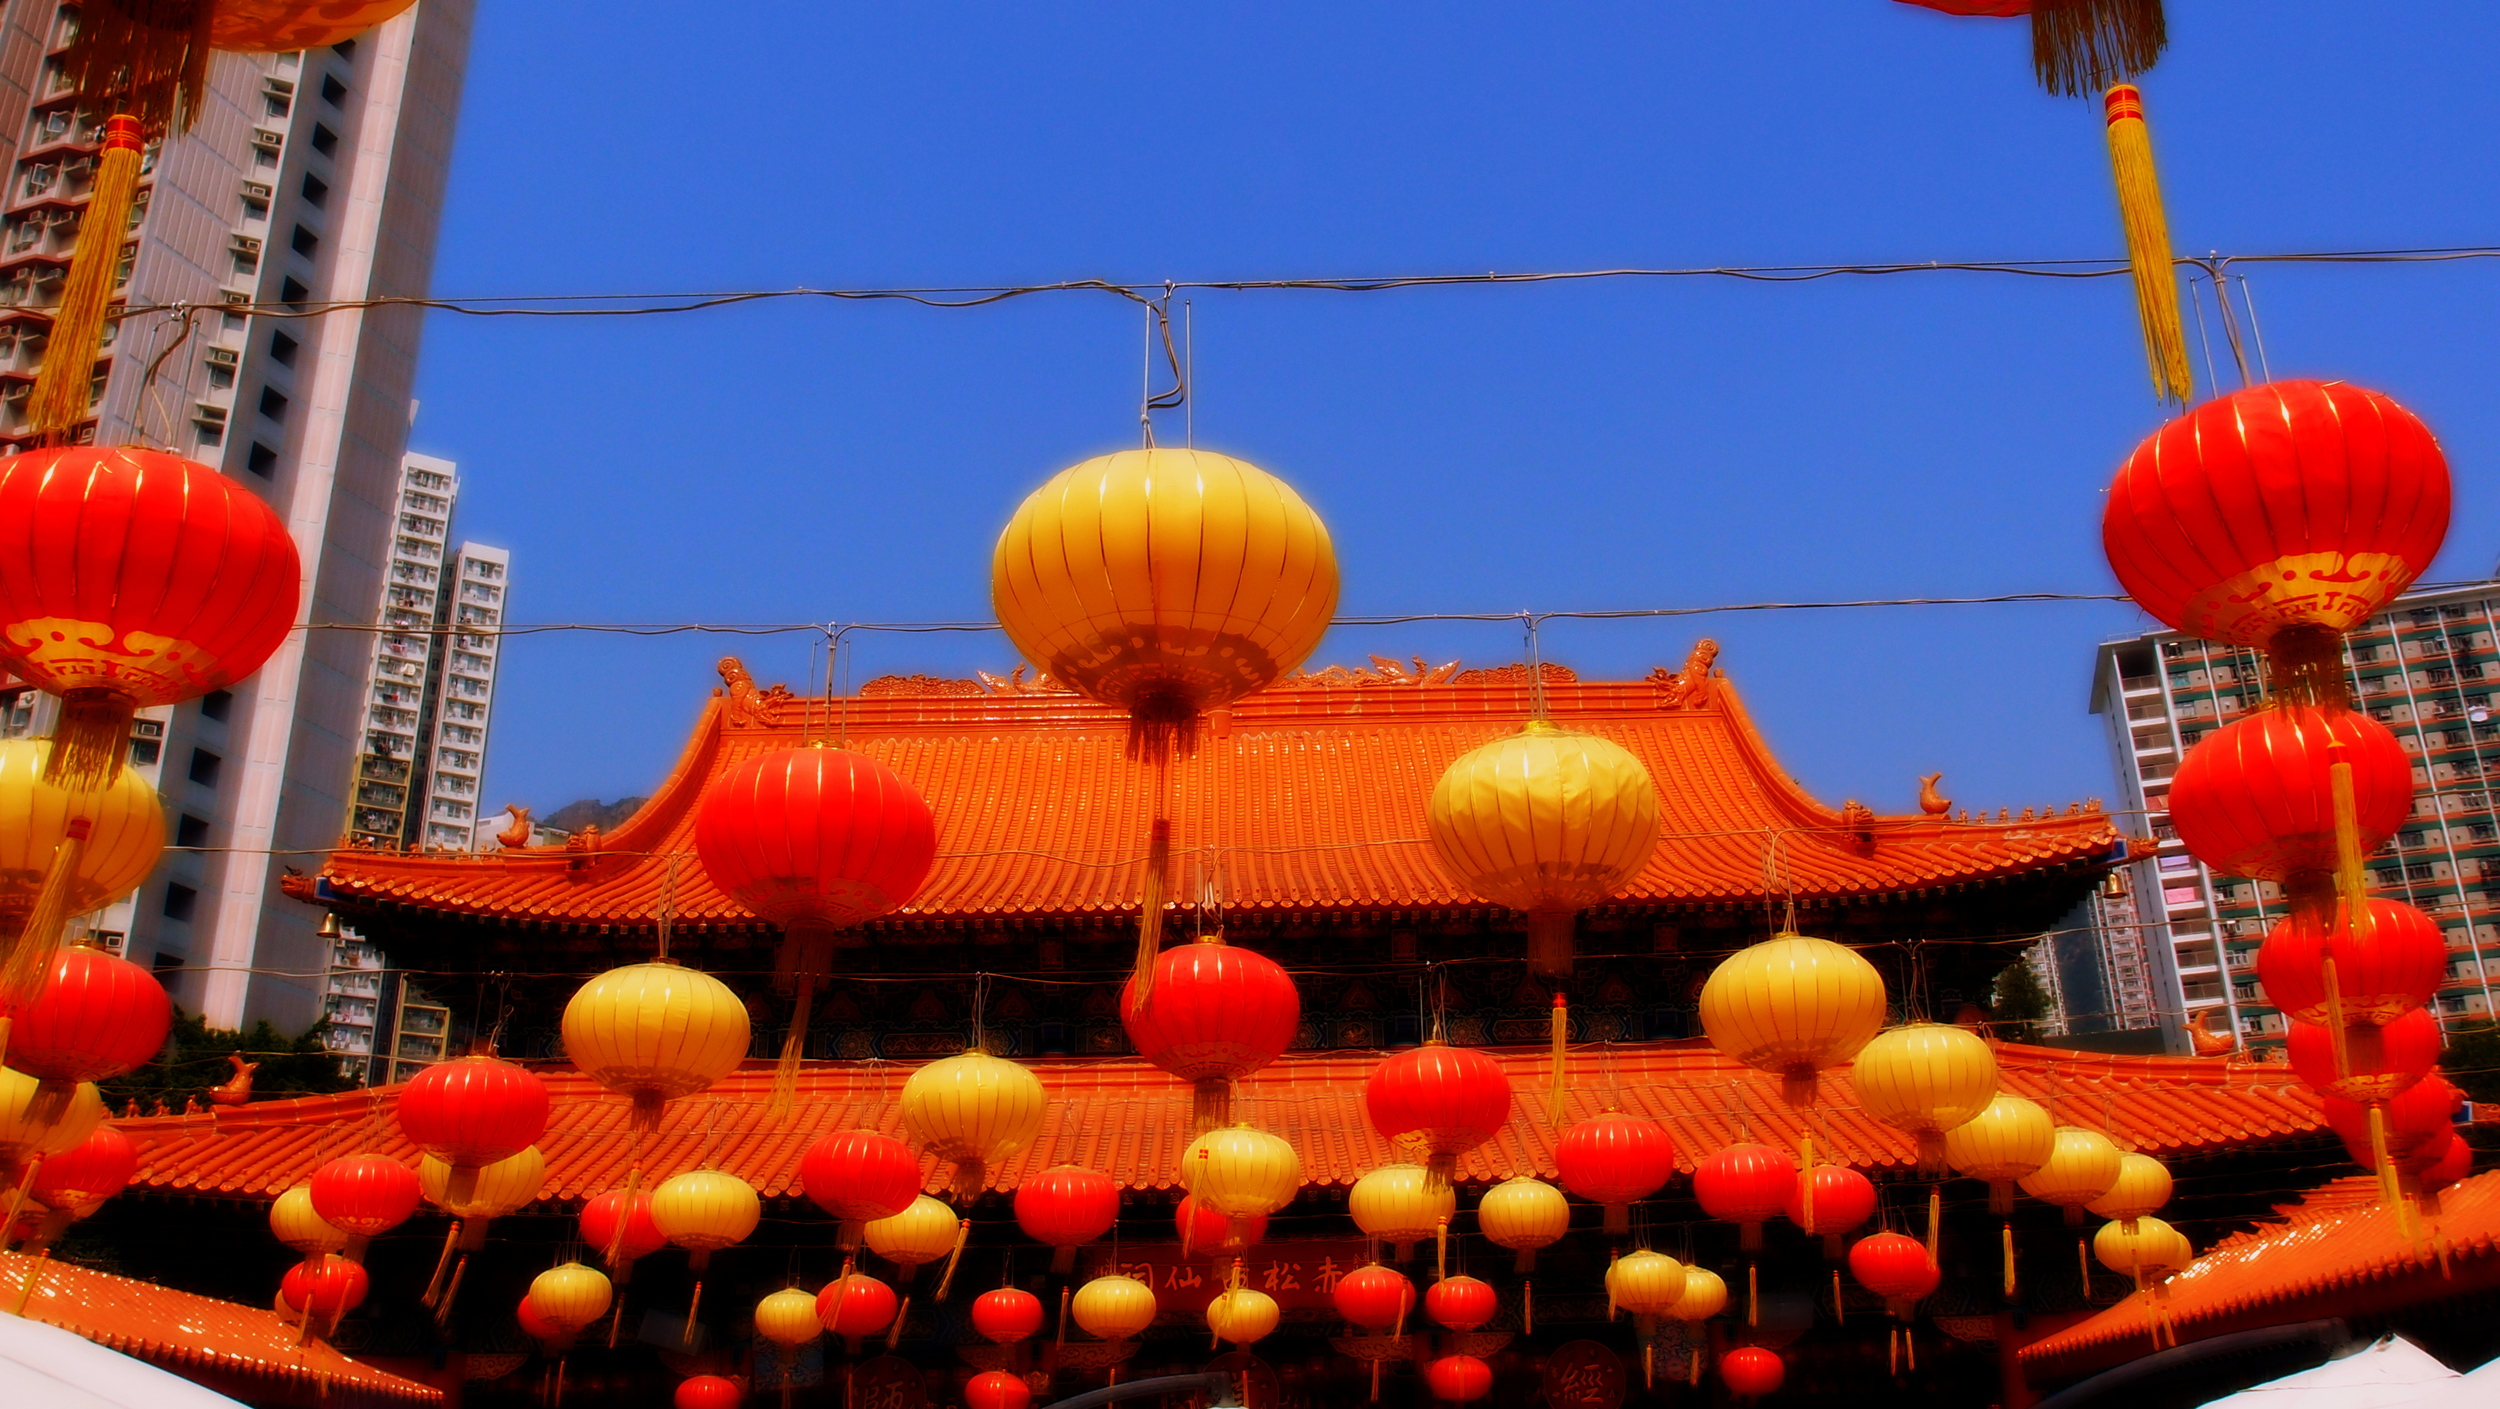 Looking absolutely stunning on a sunny day - the Sik Sik Yuen Wong Tai Sin Temple